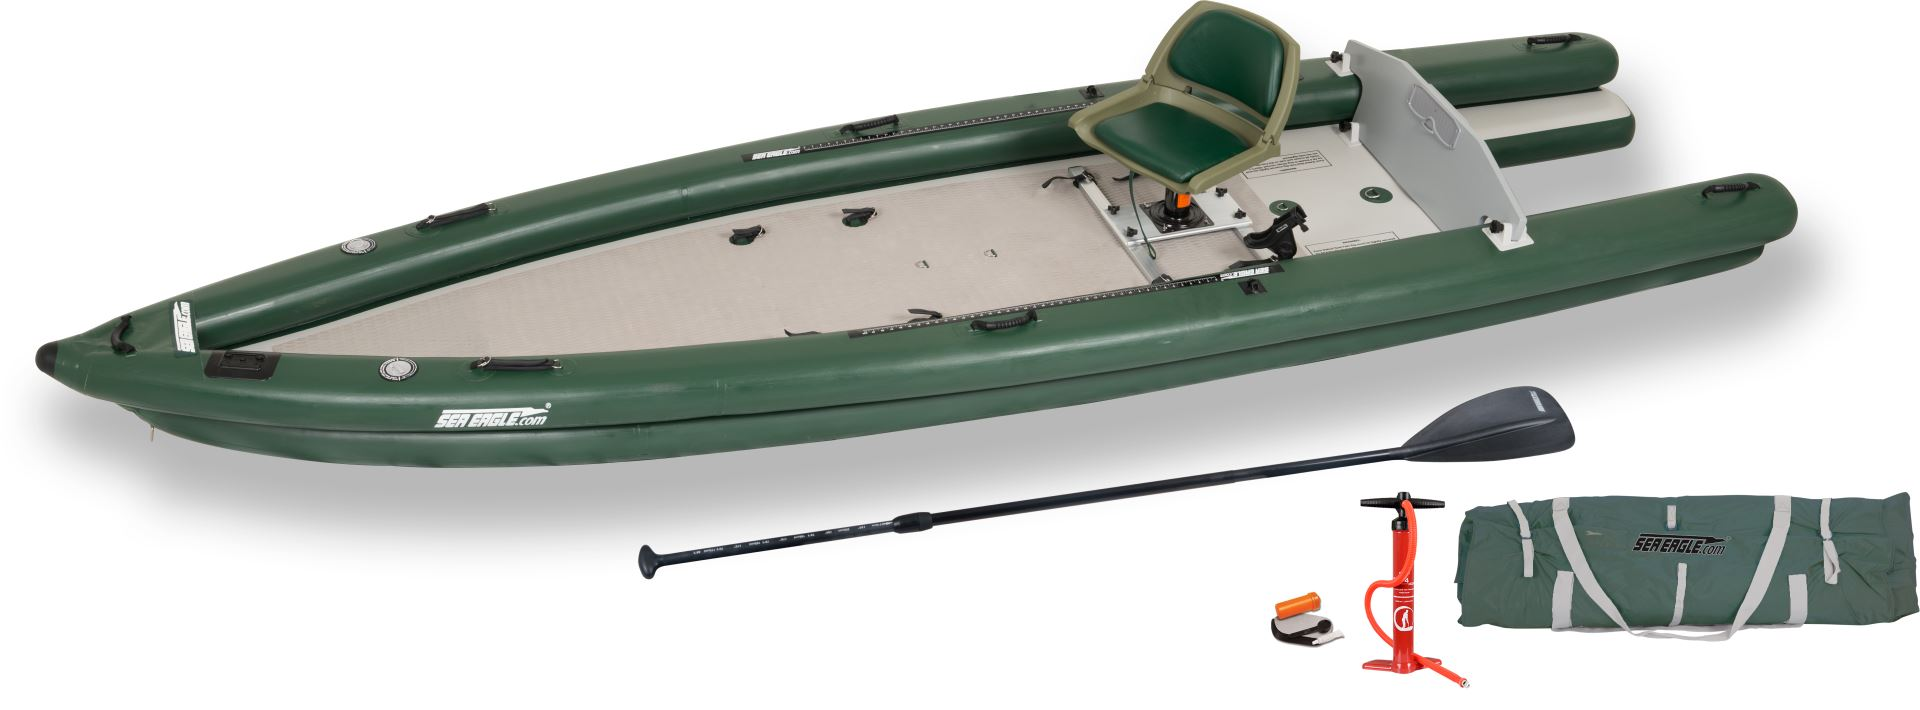 Sea eagle inflatable fishskiff 16 fishing boat for Inflatable fishing boats